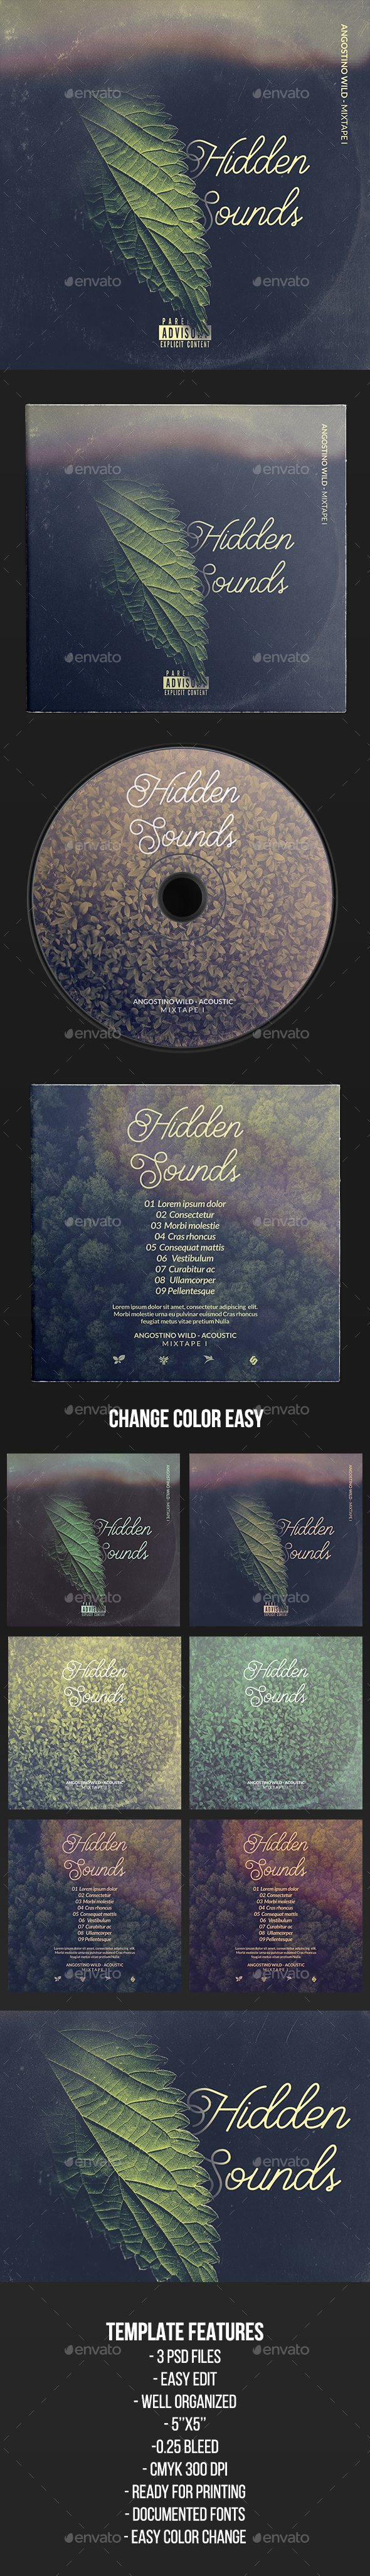 Hidden Sounds - CD Cover Artwork Template - CD & DVD Artwork Print Templates